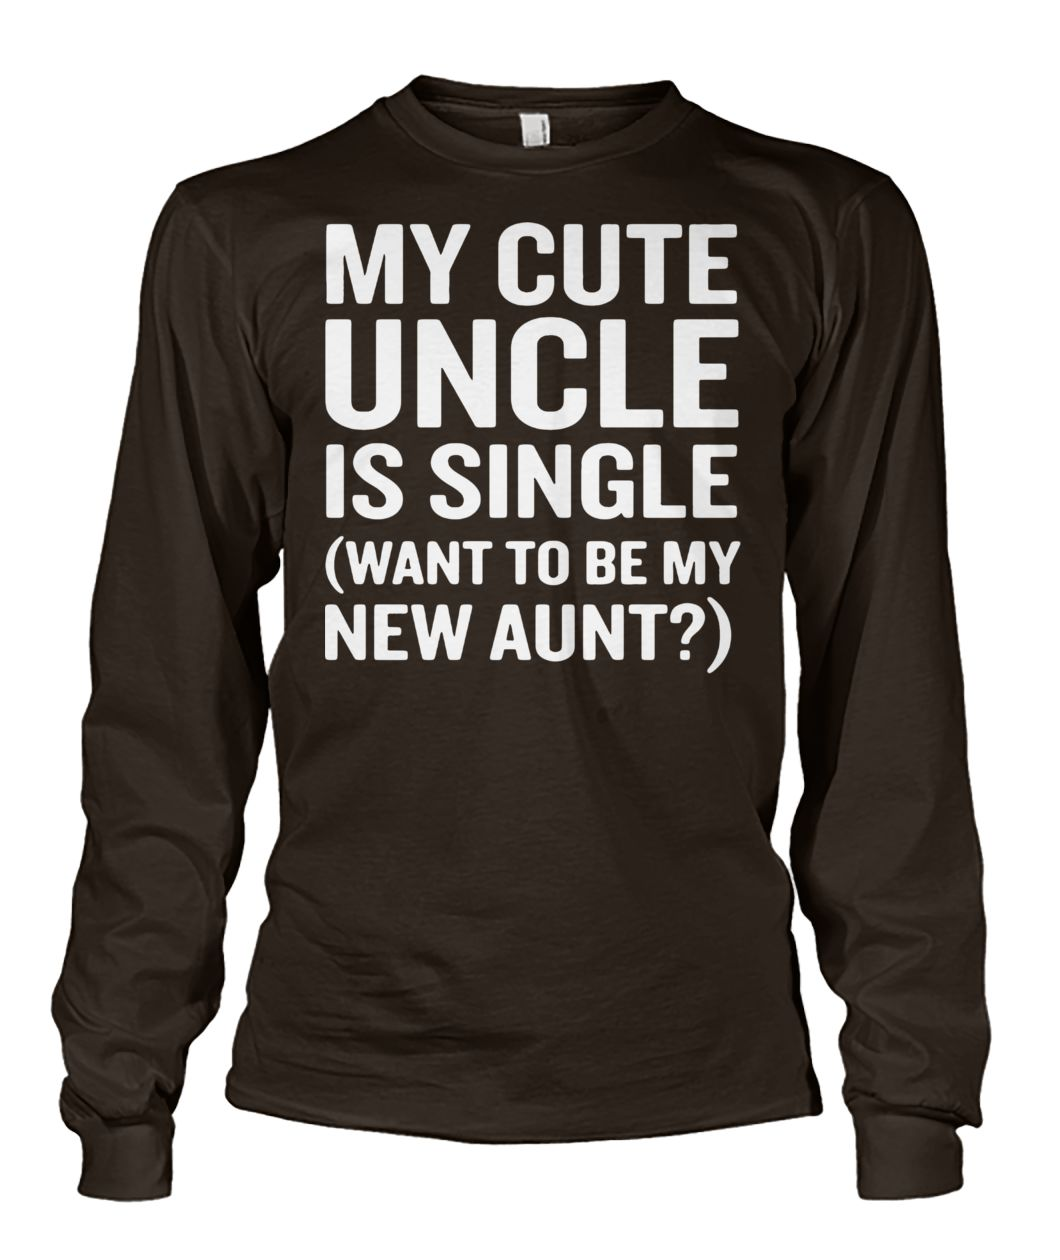 My cute uncle is single wanna be my new aunt unisex long sleeve